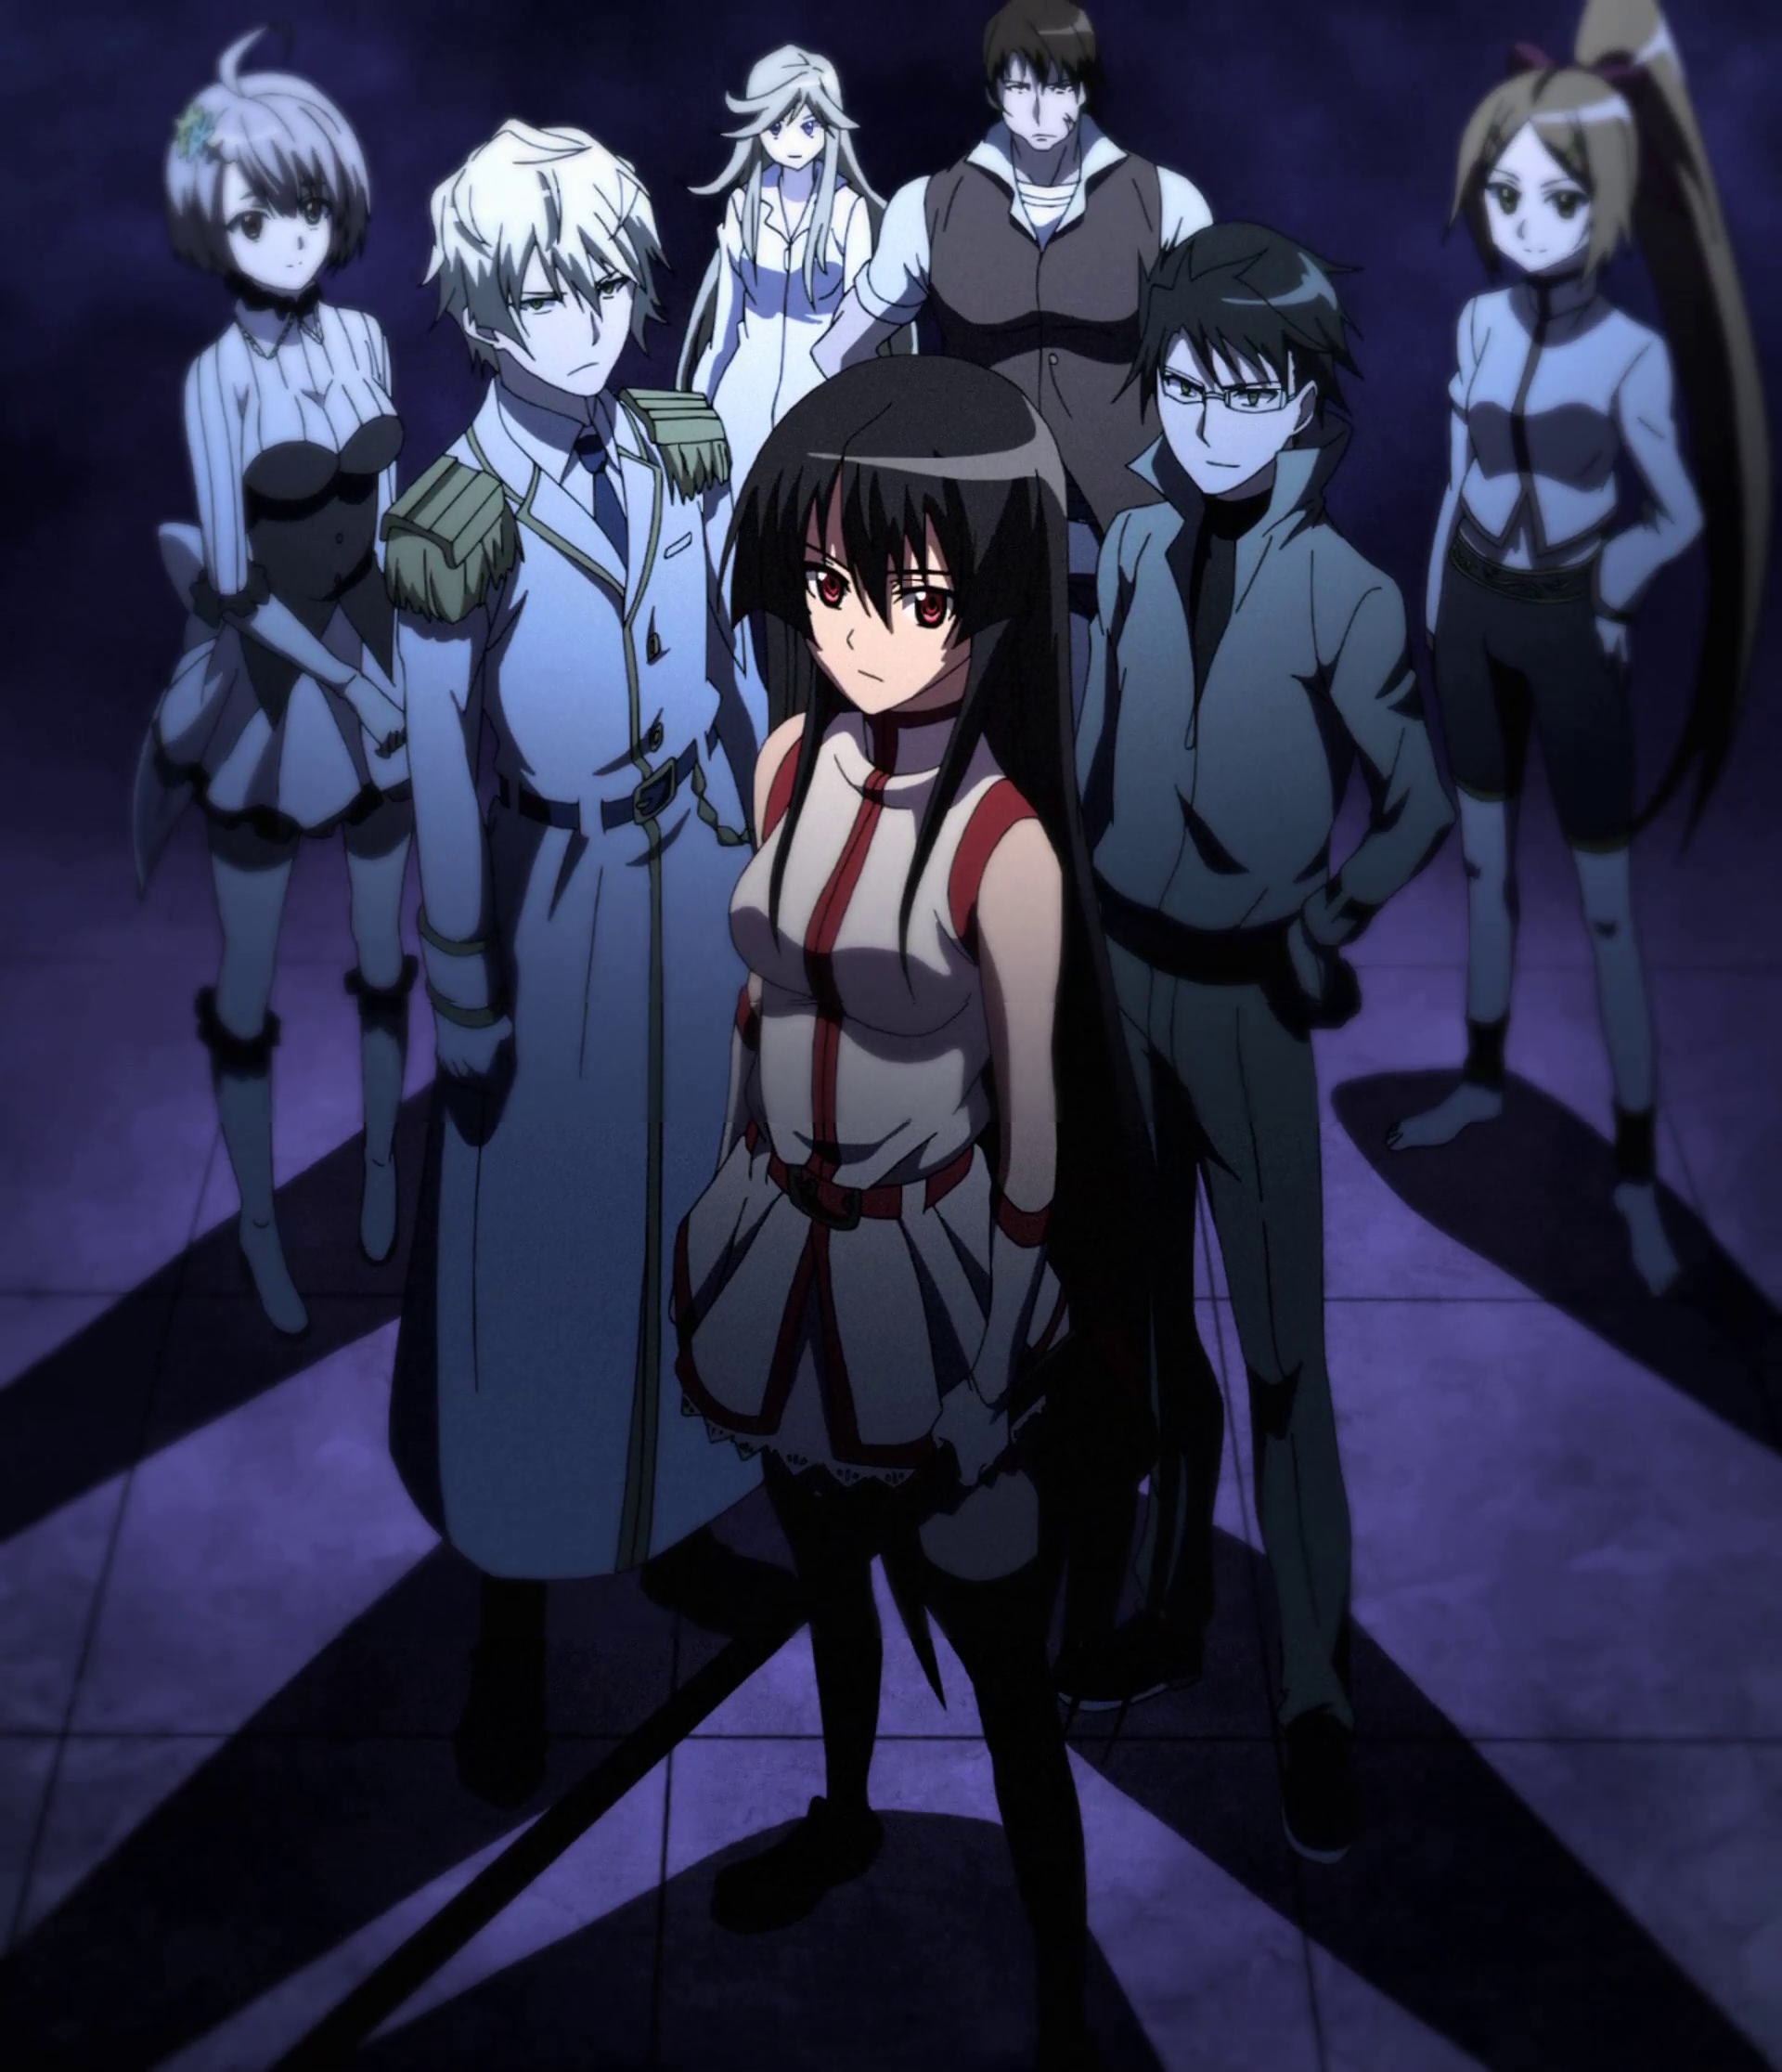 Akame Ga Kill Wallpapers Anime Hq Akame Ga Kill Pictures 4k